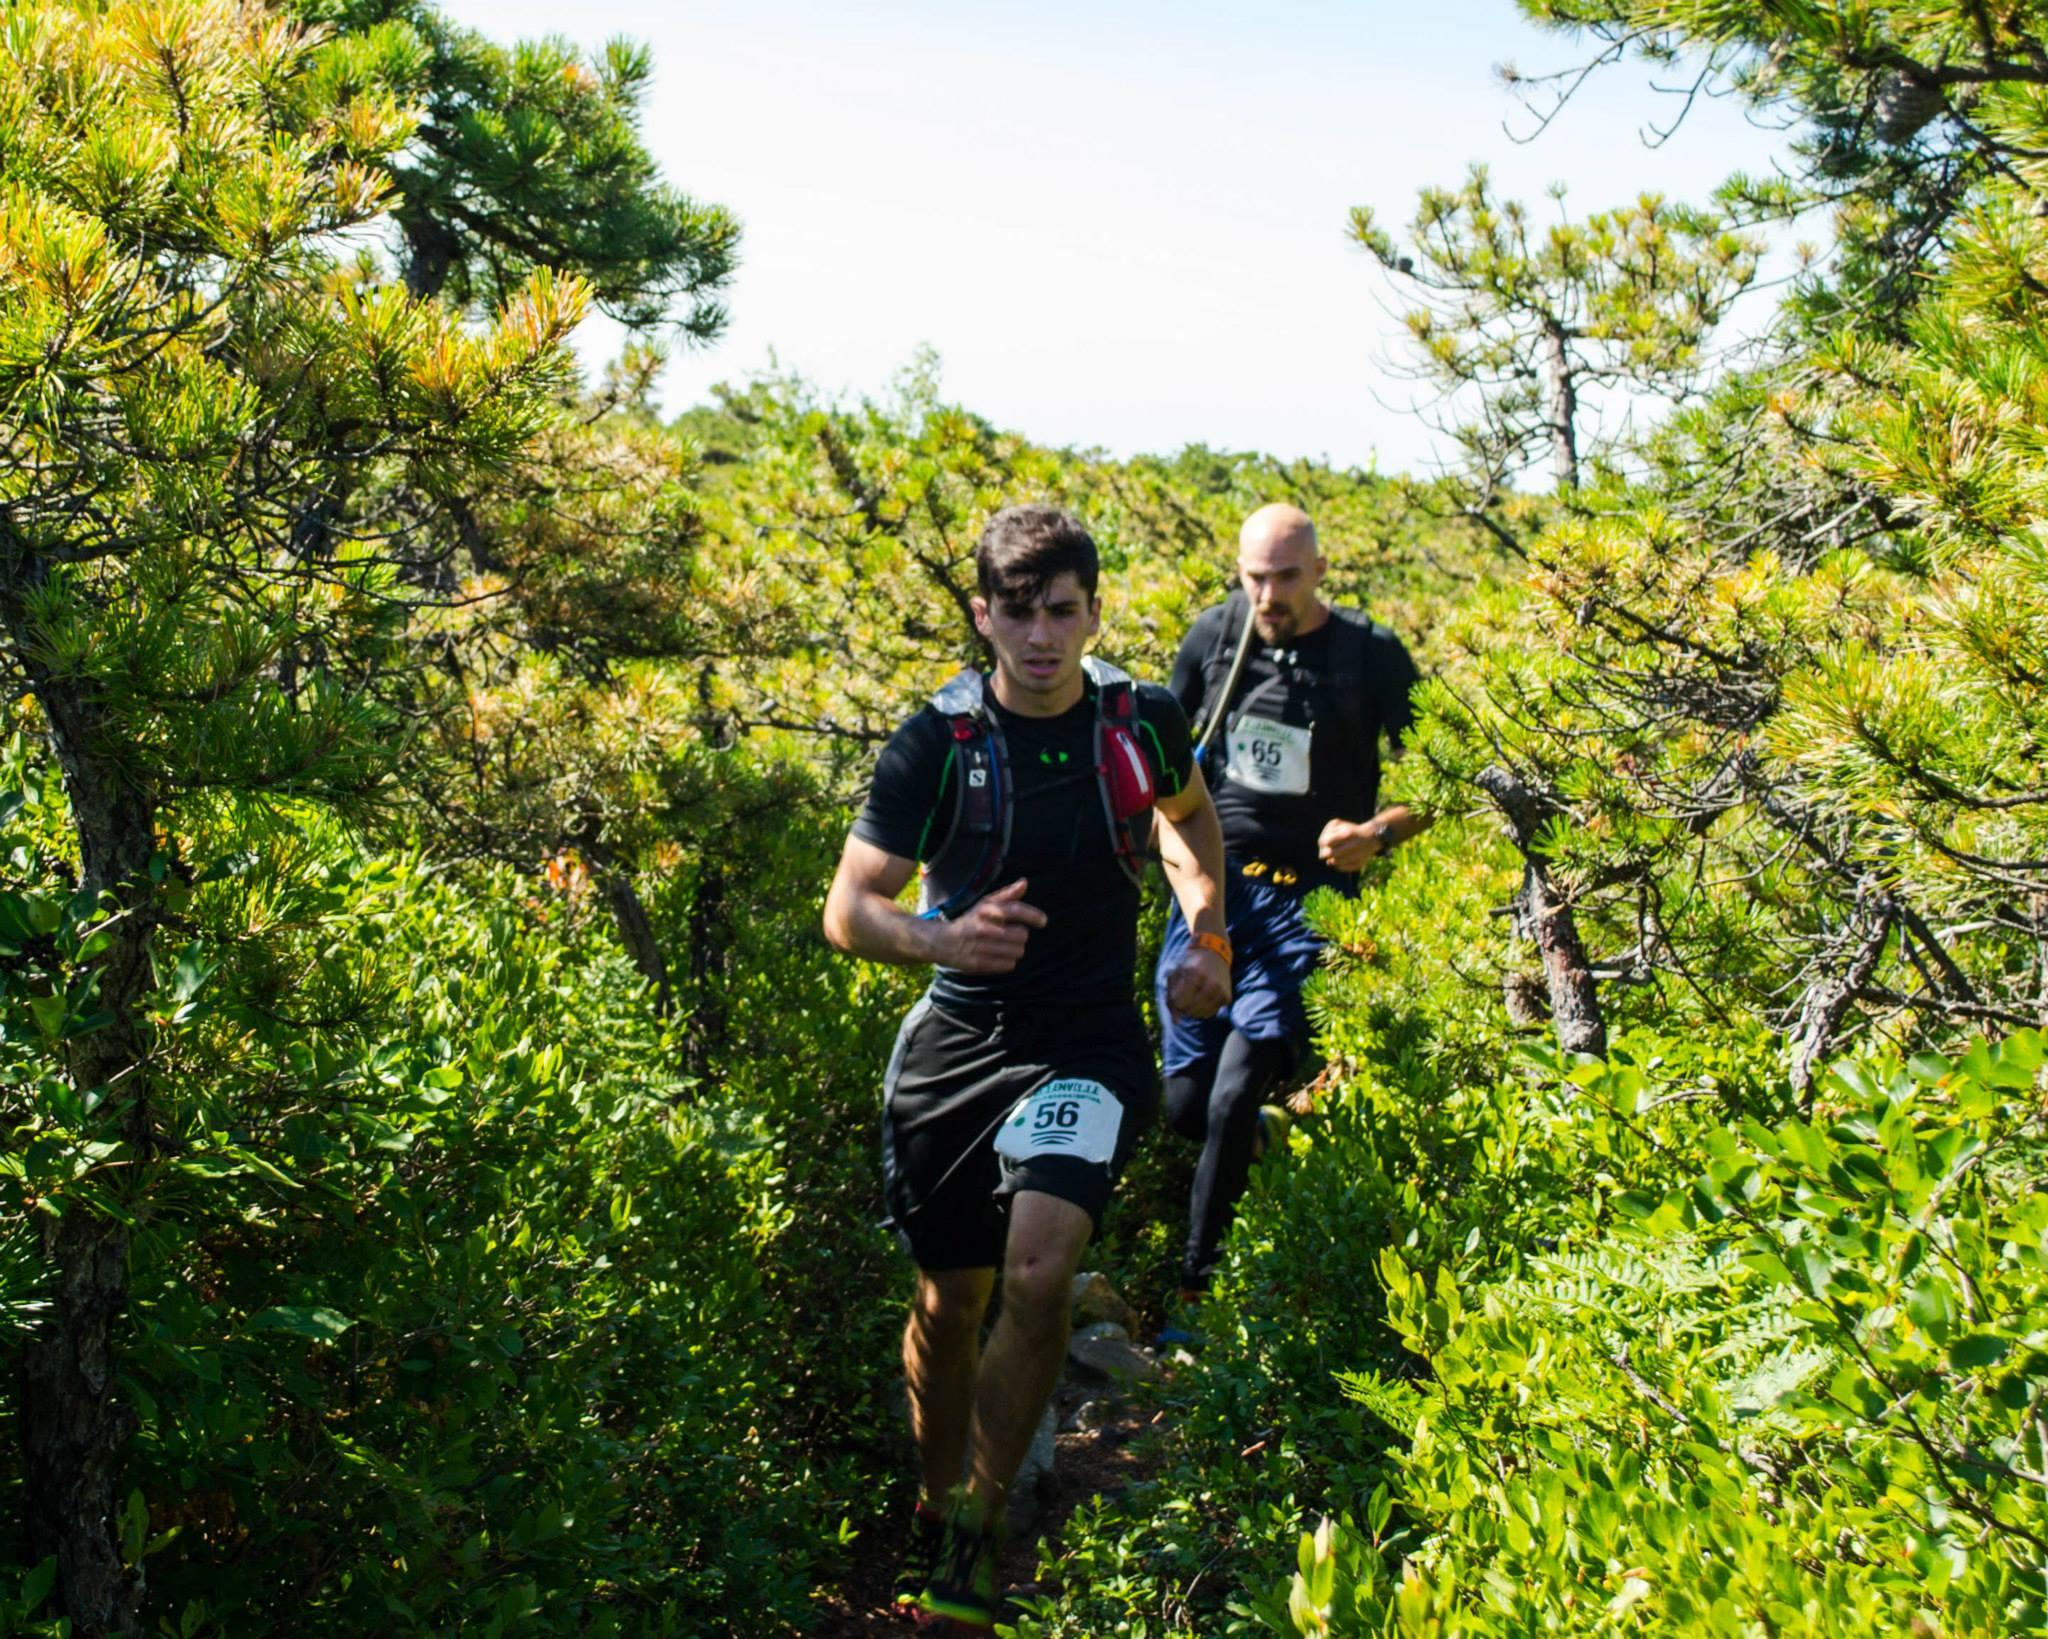 The annual Ellenville Mountain trail run takes place on lands we have conserved atop the Shawangunk Ridge.